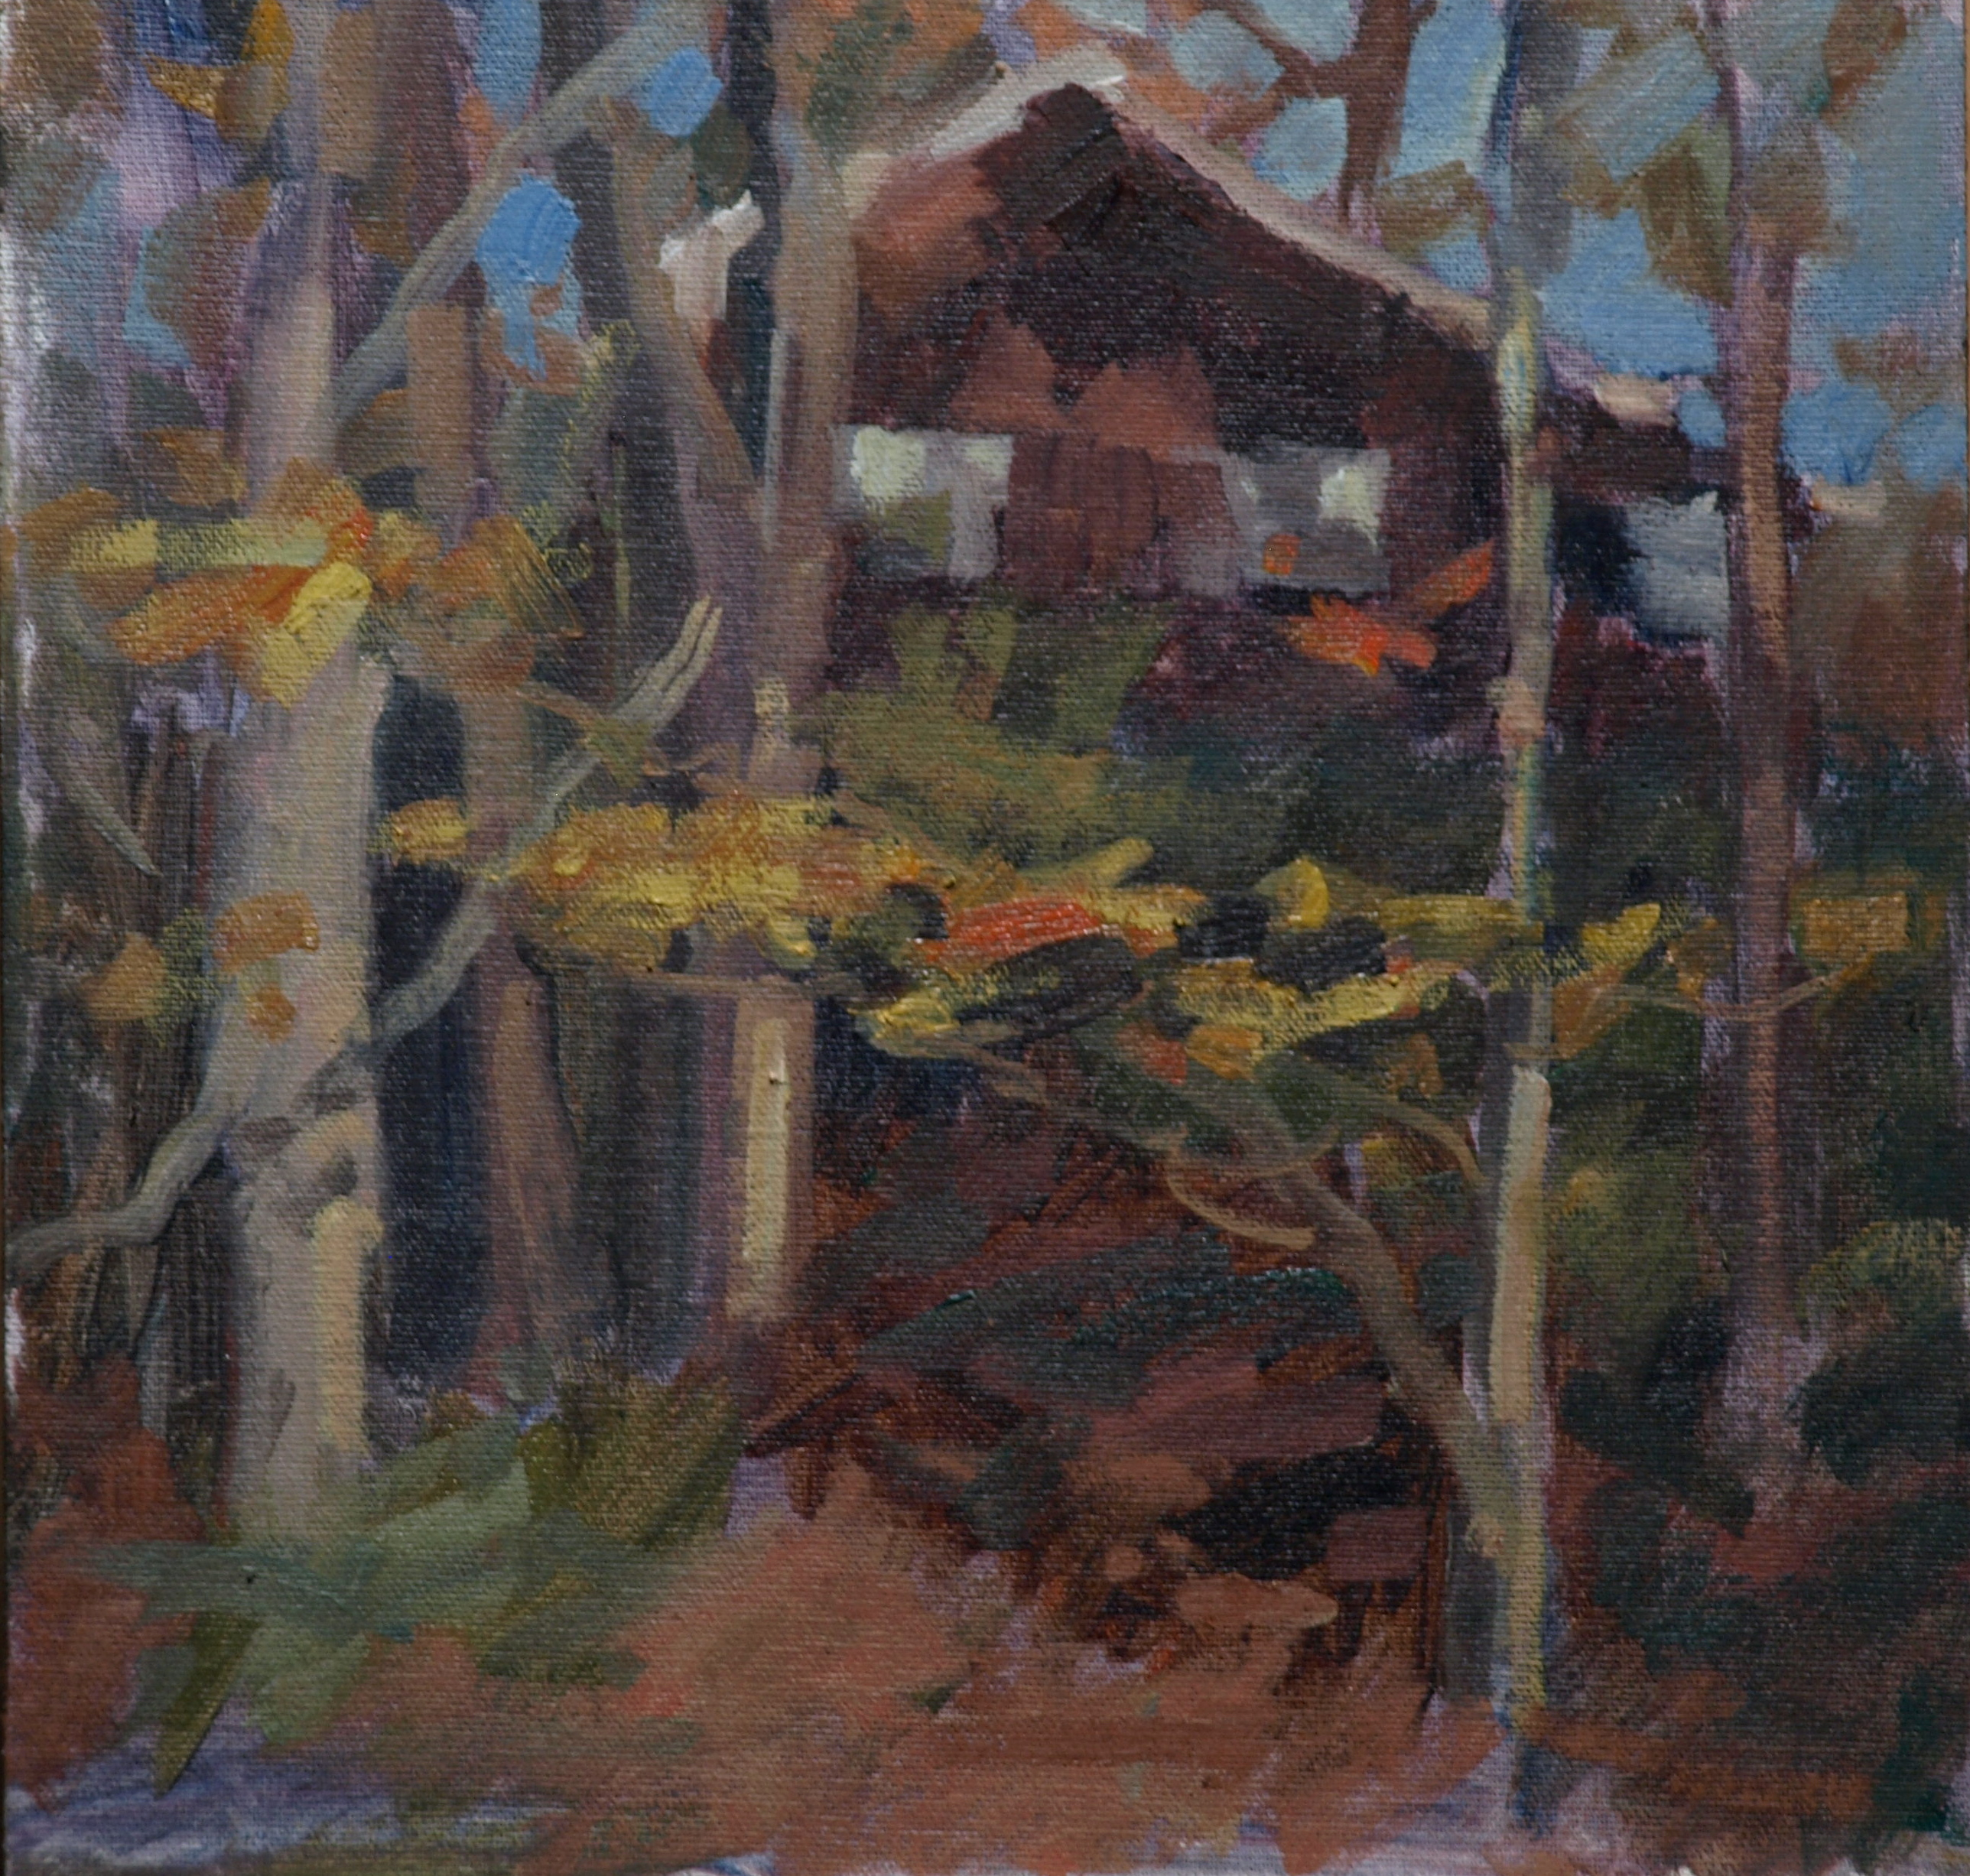 October Leaves, Oil on Canvas on Panel, 12 x 12 Inches, by Susan Grisell, $250